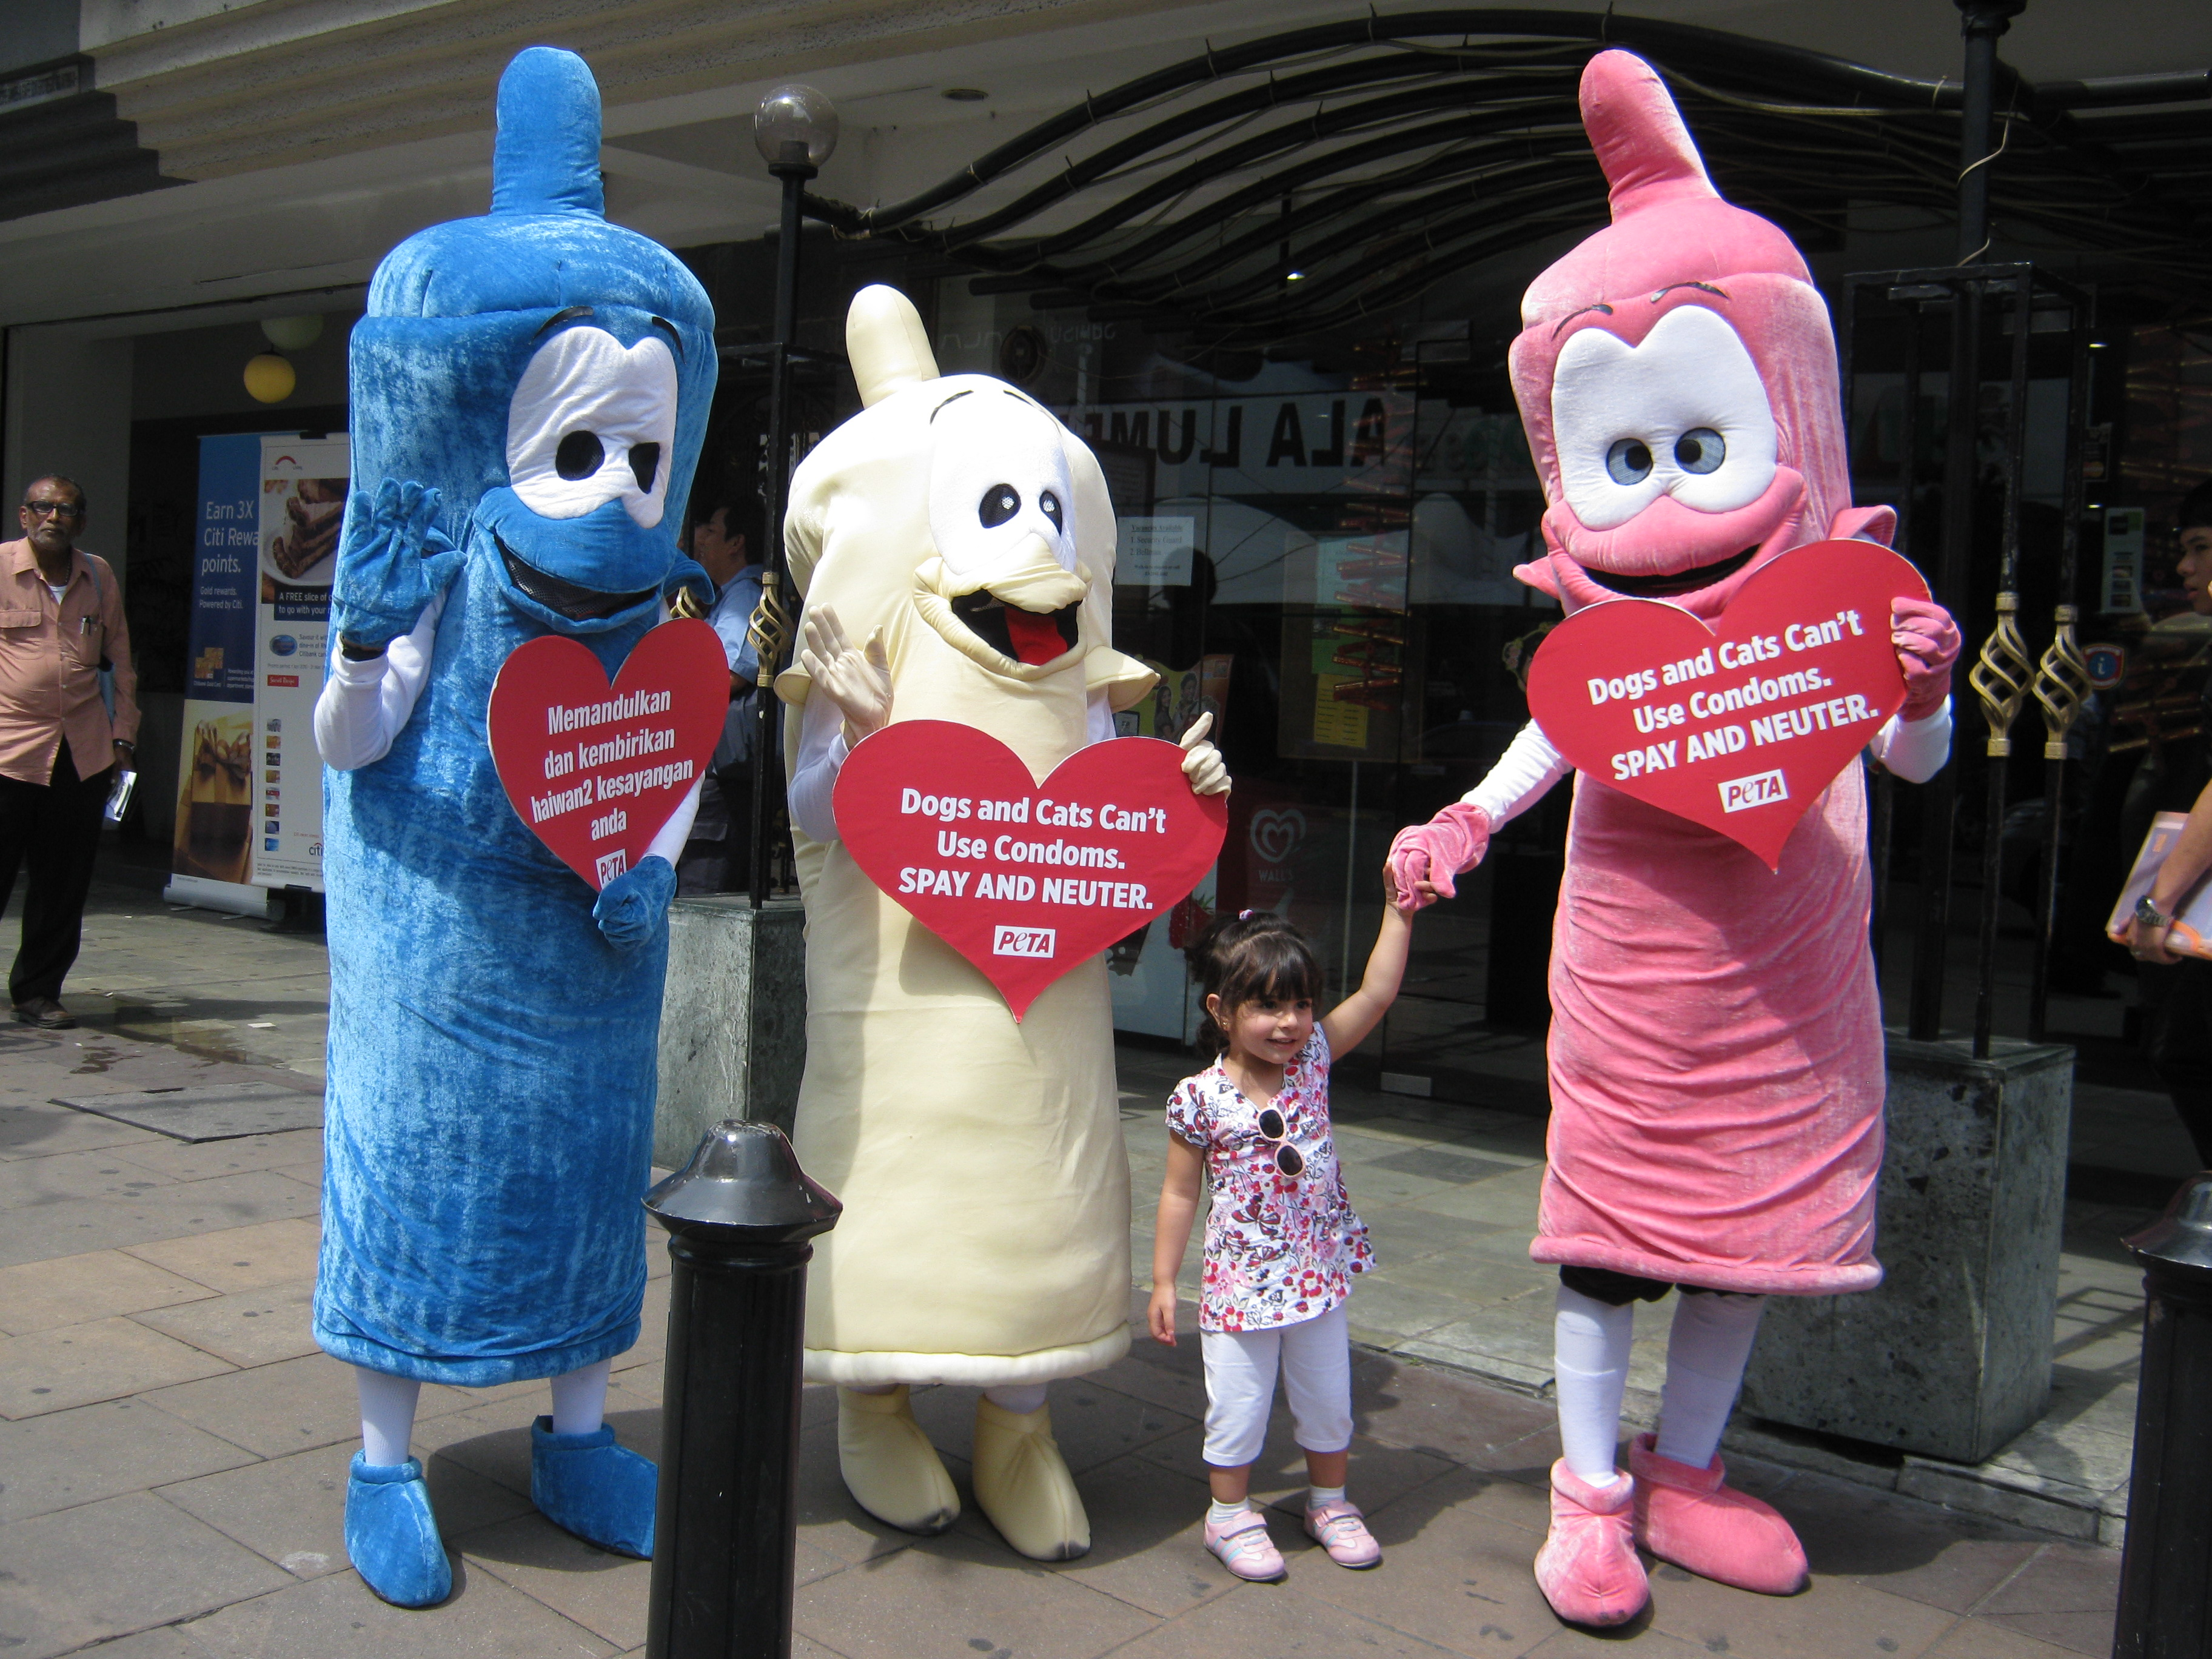 When it comes to HIV,using a condom makes sex 10,000 times safer than not  using a condom Image via petaasiapacific.com